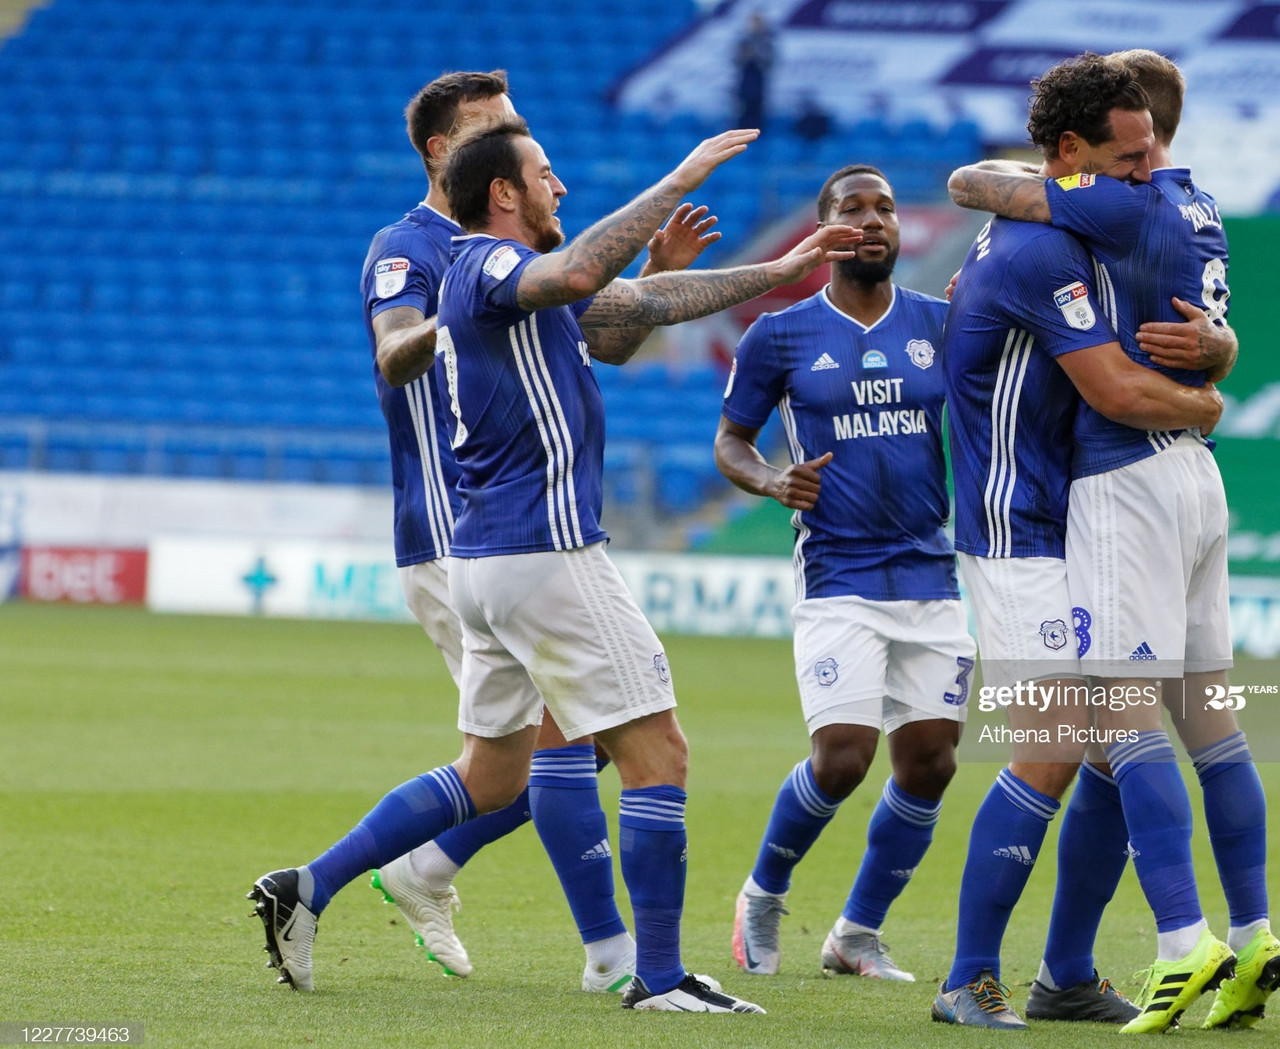 Cardiff City 3-0 Hull City: Bluebirds make play-offs as Tigers relegated